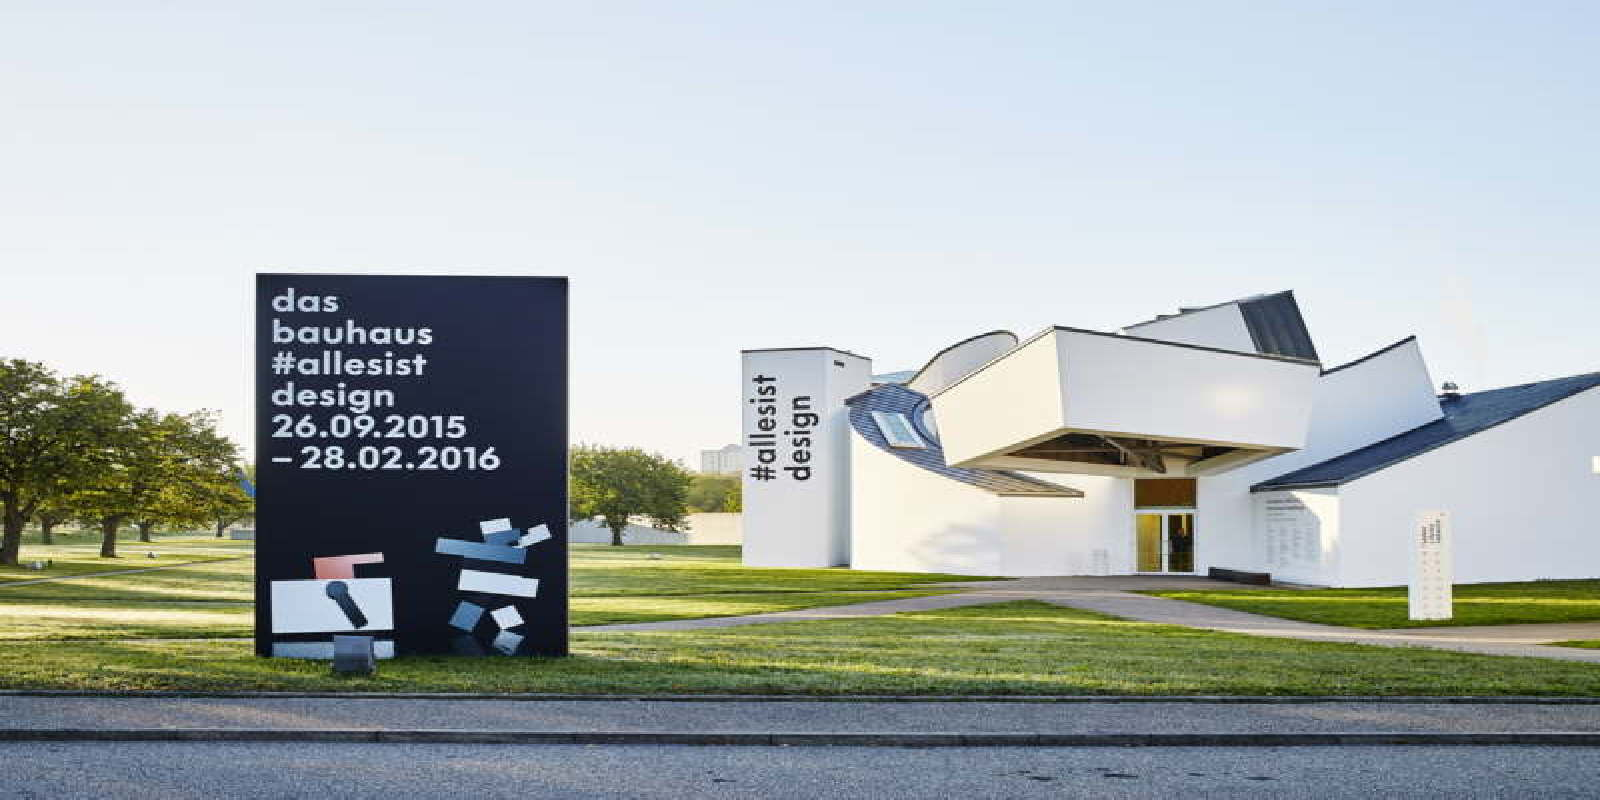 Vitra Design Museum The Bauhaus #itsalldesign exhibition | Floornature